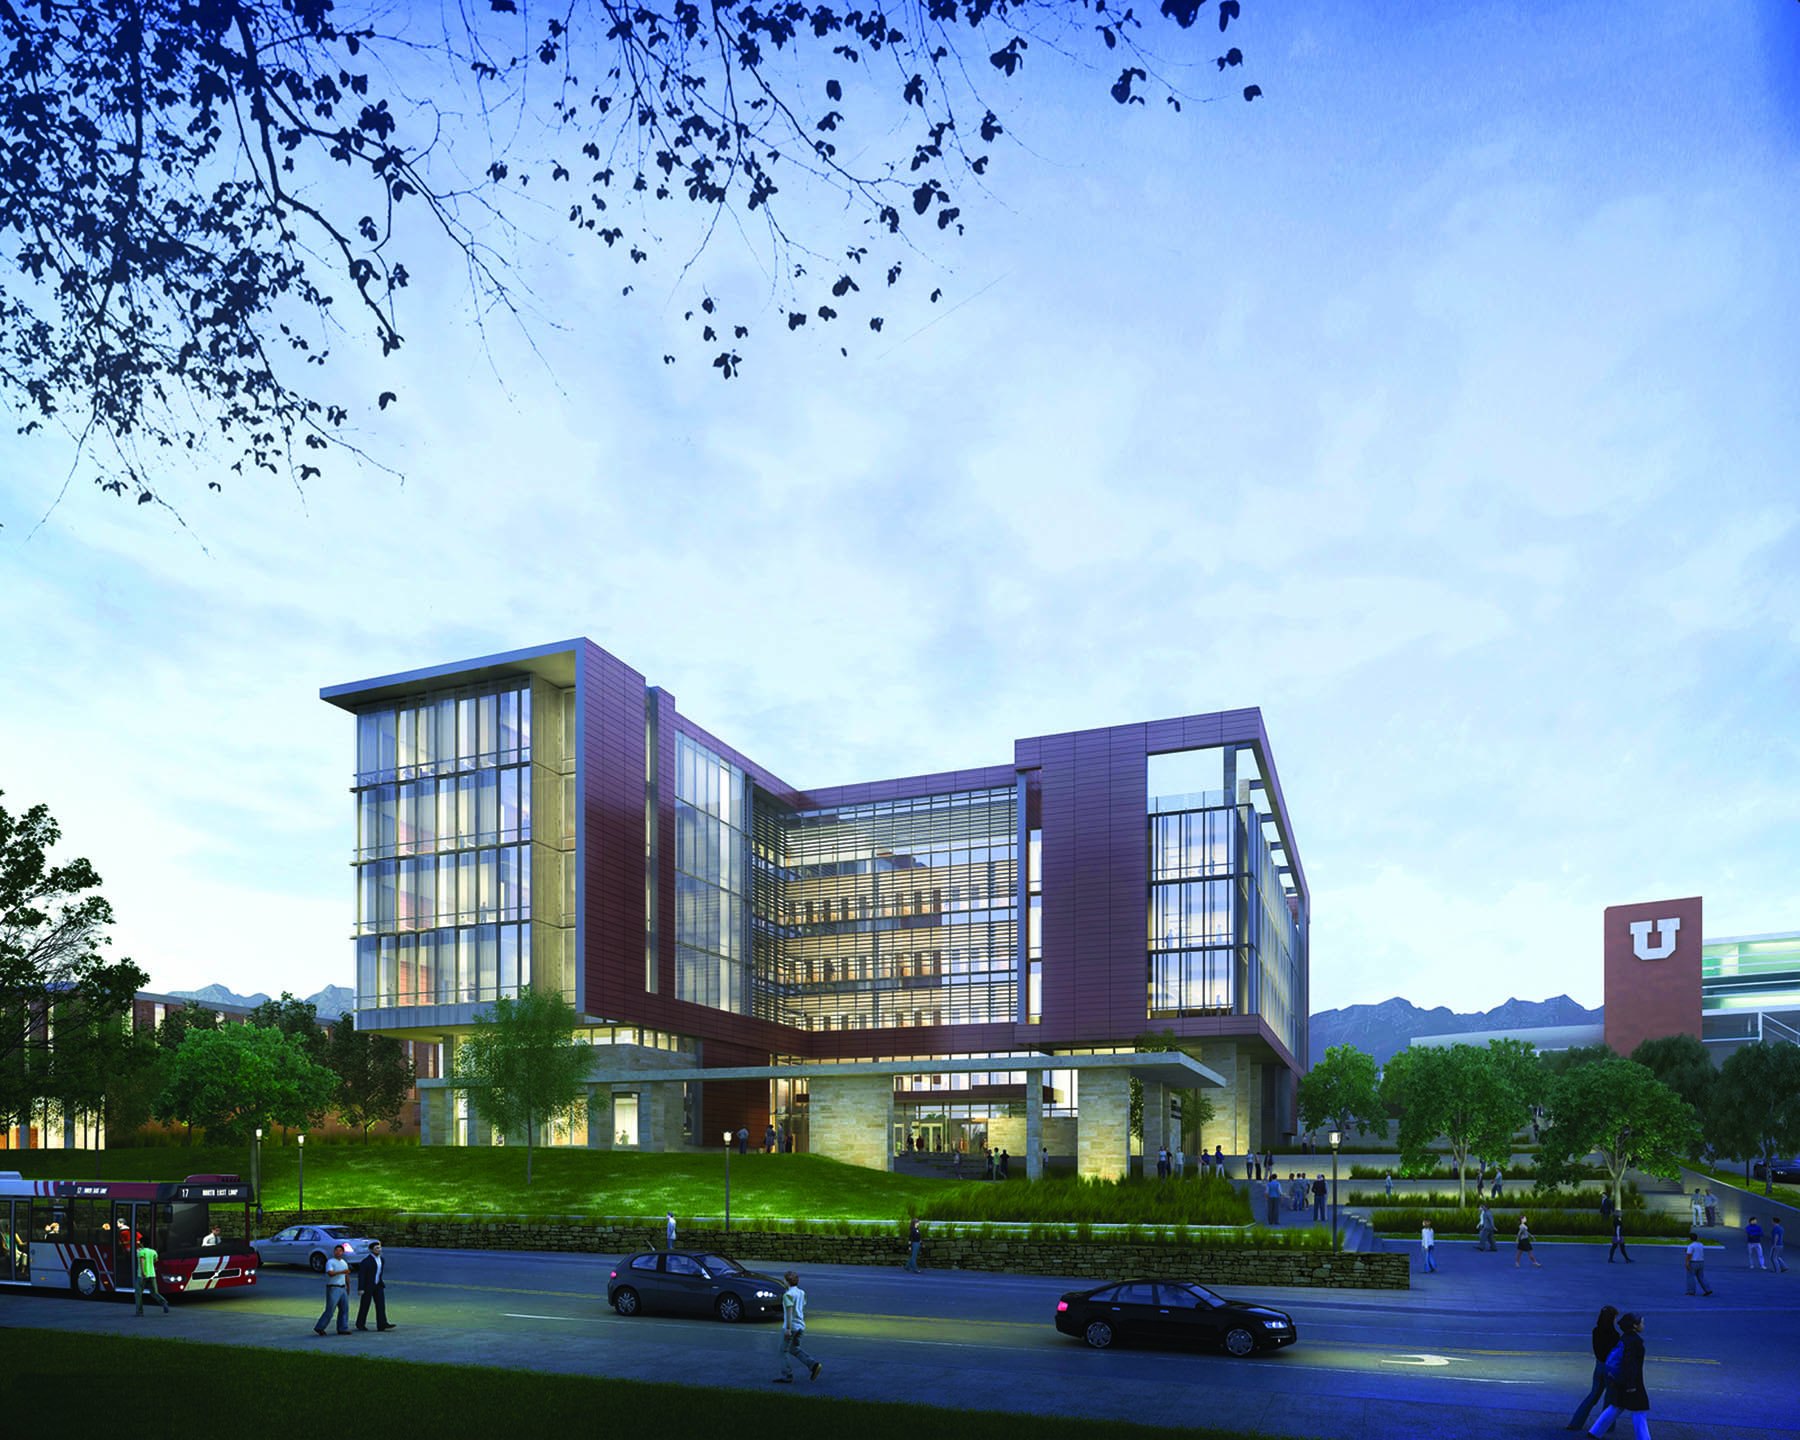 Rendering of the new S.J. Quinney College of Law building, which broke ground June 4. Construction begins June 17 and is expected to be ready for the 2015-16 academic year. The building is designed to be among the most sustainable buildings in the country.